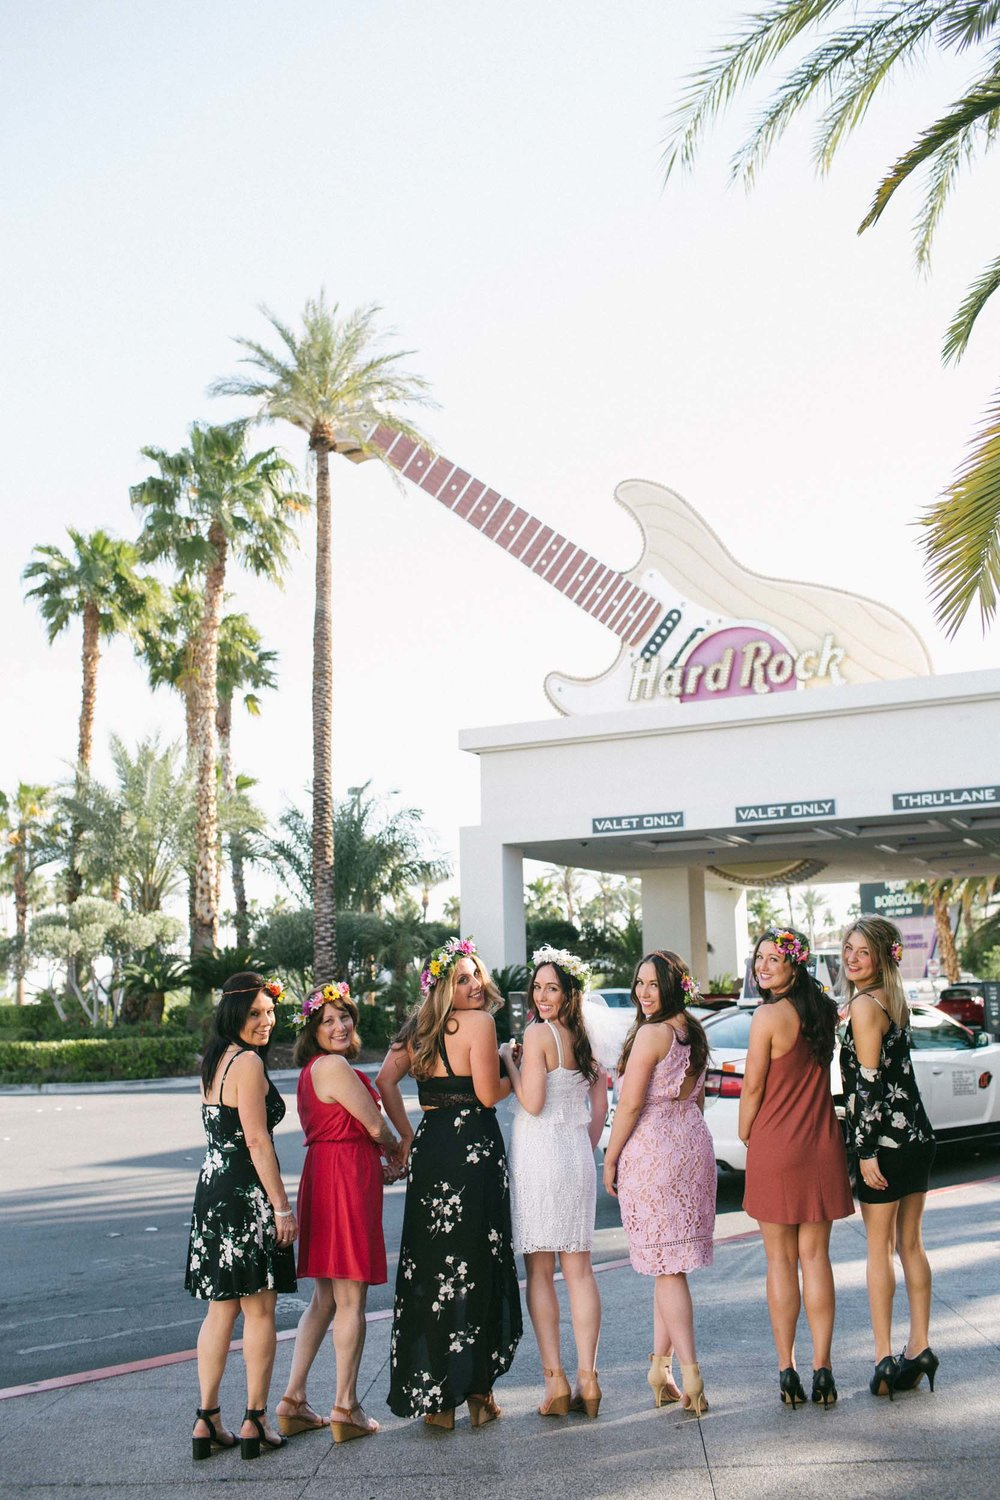 Check out these fun photos Las Vegas bachelorette party photos on the Flytographer blog!   Travel + Vacation Photographer   Family Vacations   Engagement Proposals   Honeymoons   Anniversary Gifts   Bachelorette Ideas   Solo Traveller Tips    Flytographer captures your travel memories - everything from surprise proposals, honeymoons, family vacations, and more. So often you are missing out of your own photos! Flytographer solves that problem for you. Our photographers also act as informal tour guides and provide fun local tips to our customers, showing them an area of a city they may not have explored without Flytographer. Book your photographer at 1.888.211.7178 or visit our website at www.flytographer.com/book